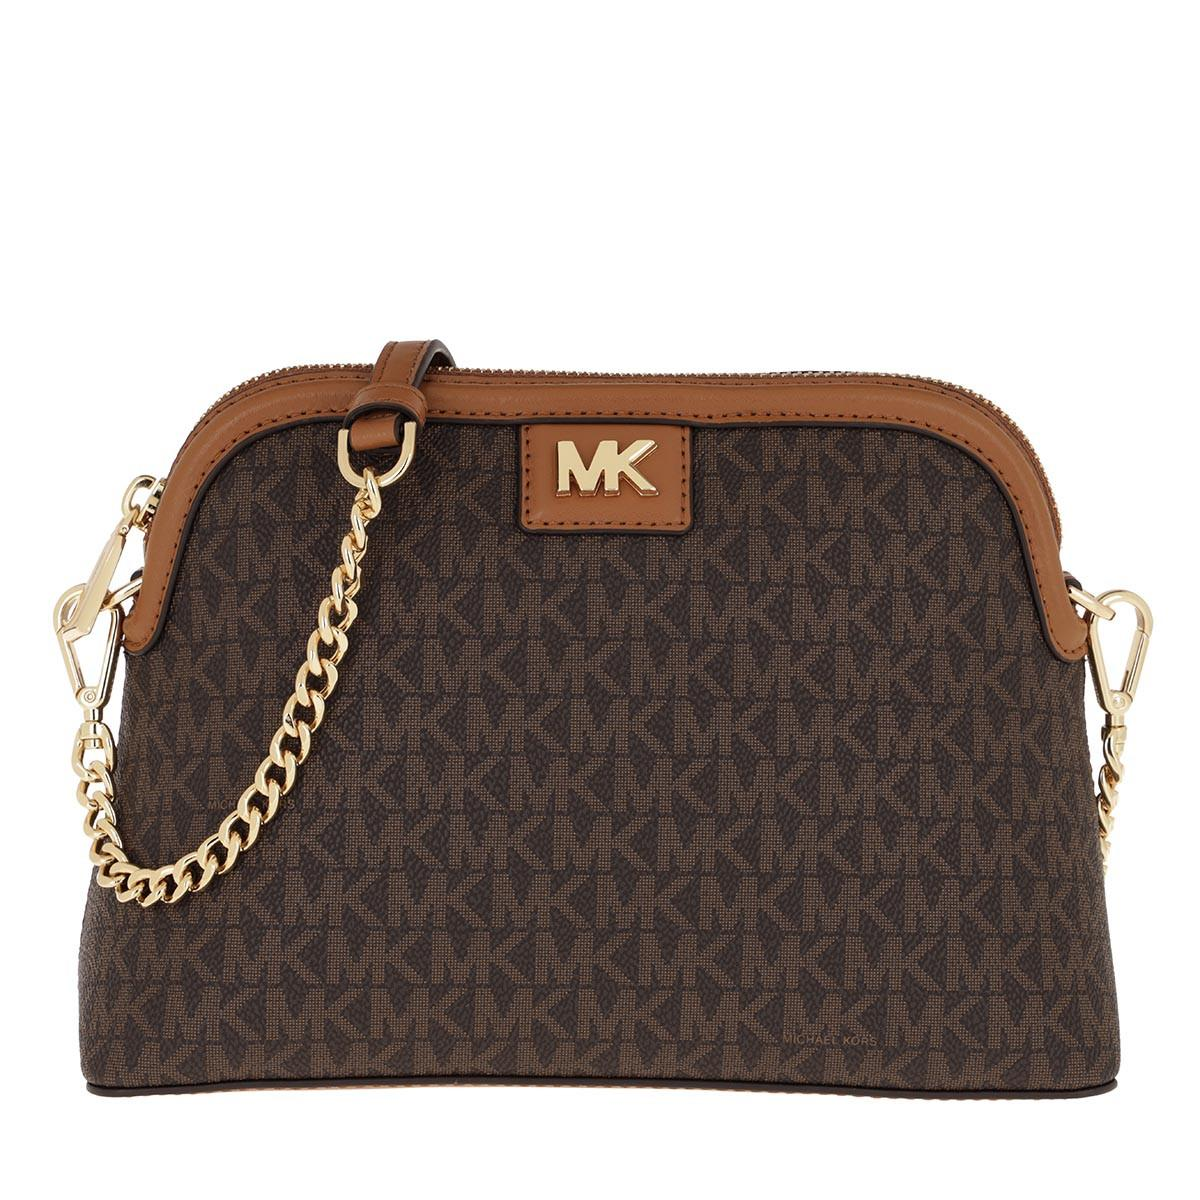 Grand sac �� bandouli��re de forme arrondie avec logo Toile Michael Kors - 3 % de réduction